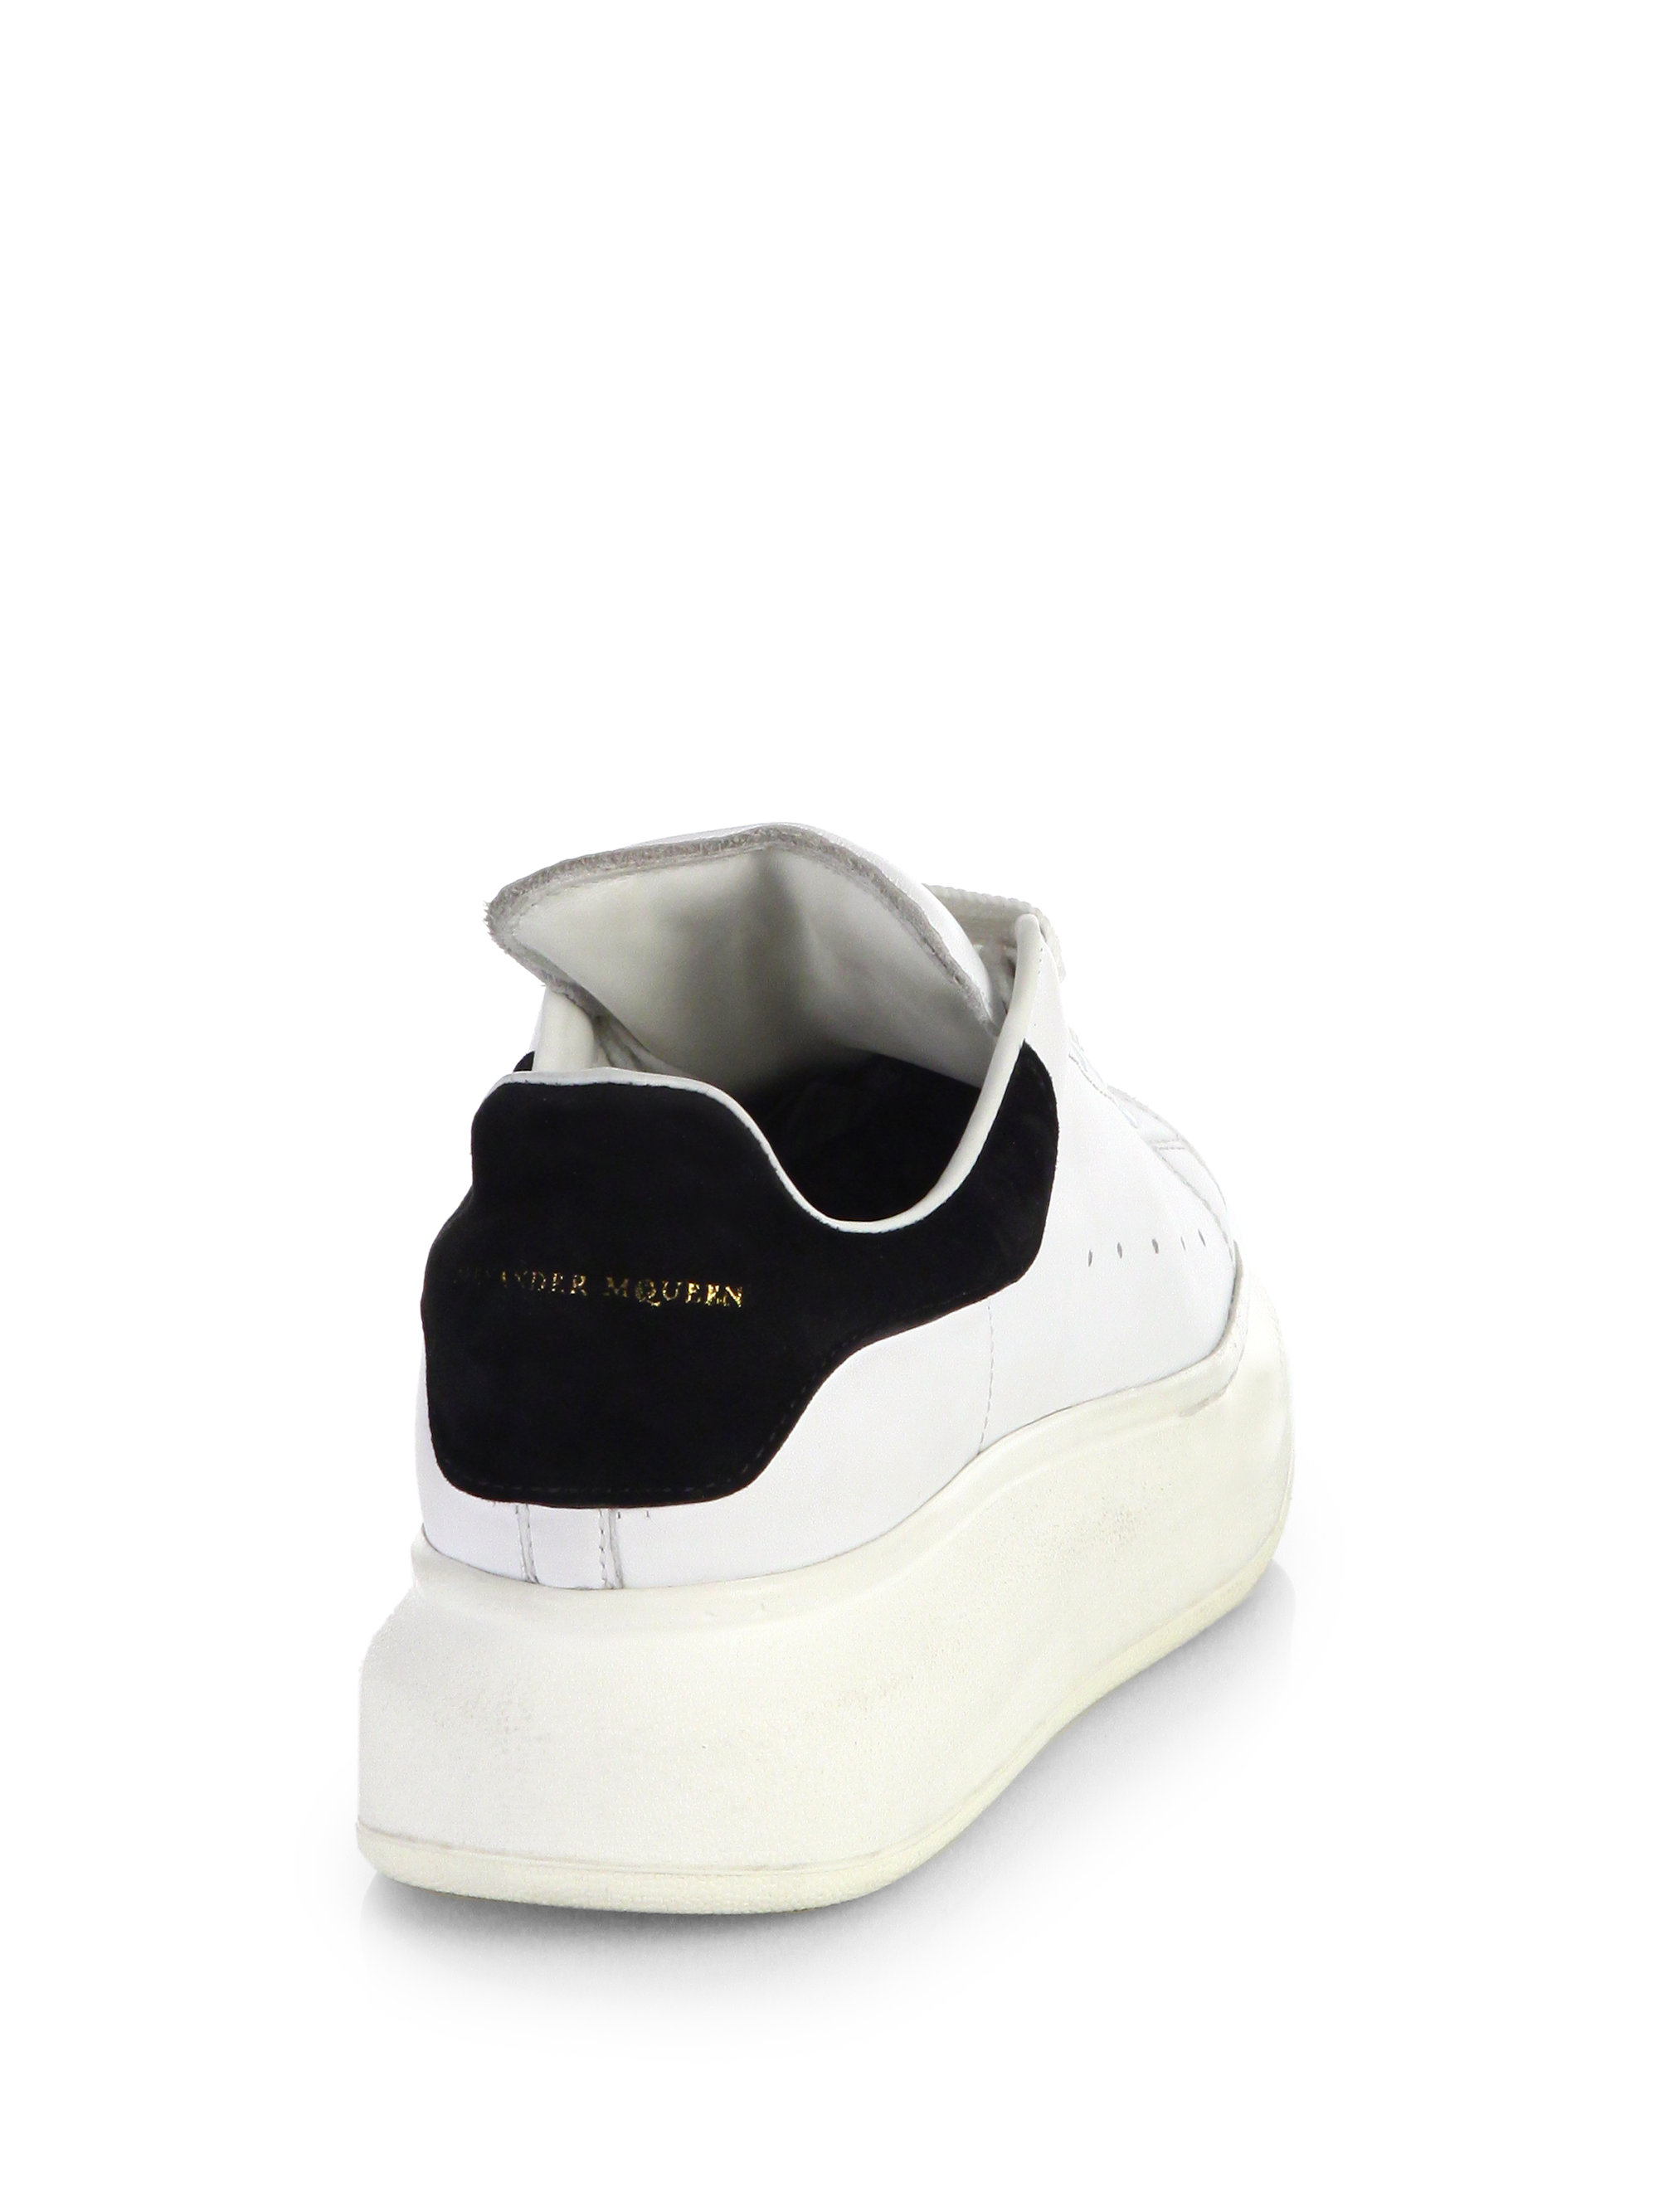 6cdc6690e210 Lyst - Alexander McQueen Leather Platform Sneakers in White